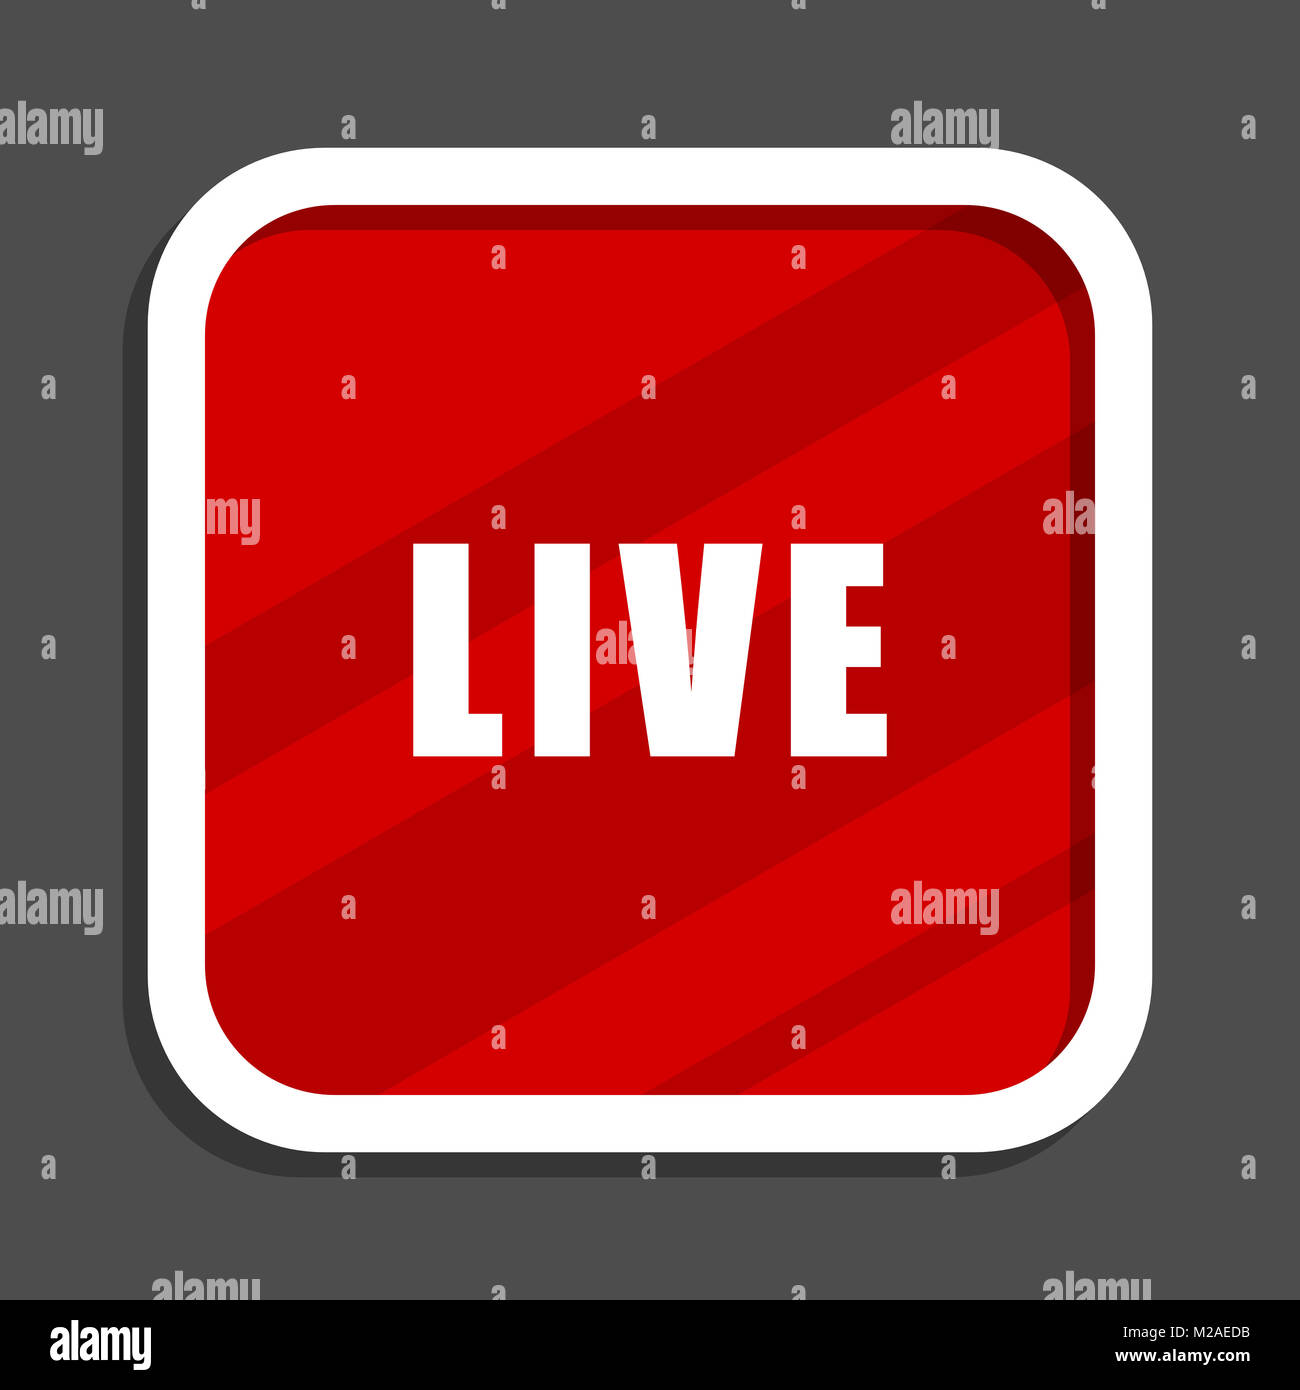 Live icon. Flat design square internet banner. - Stock Image